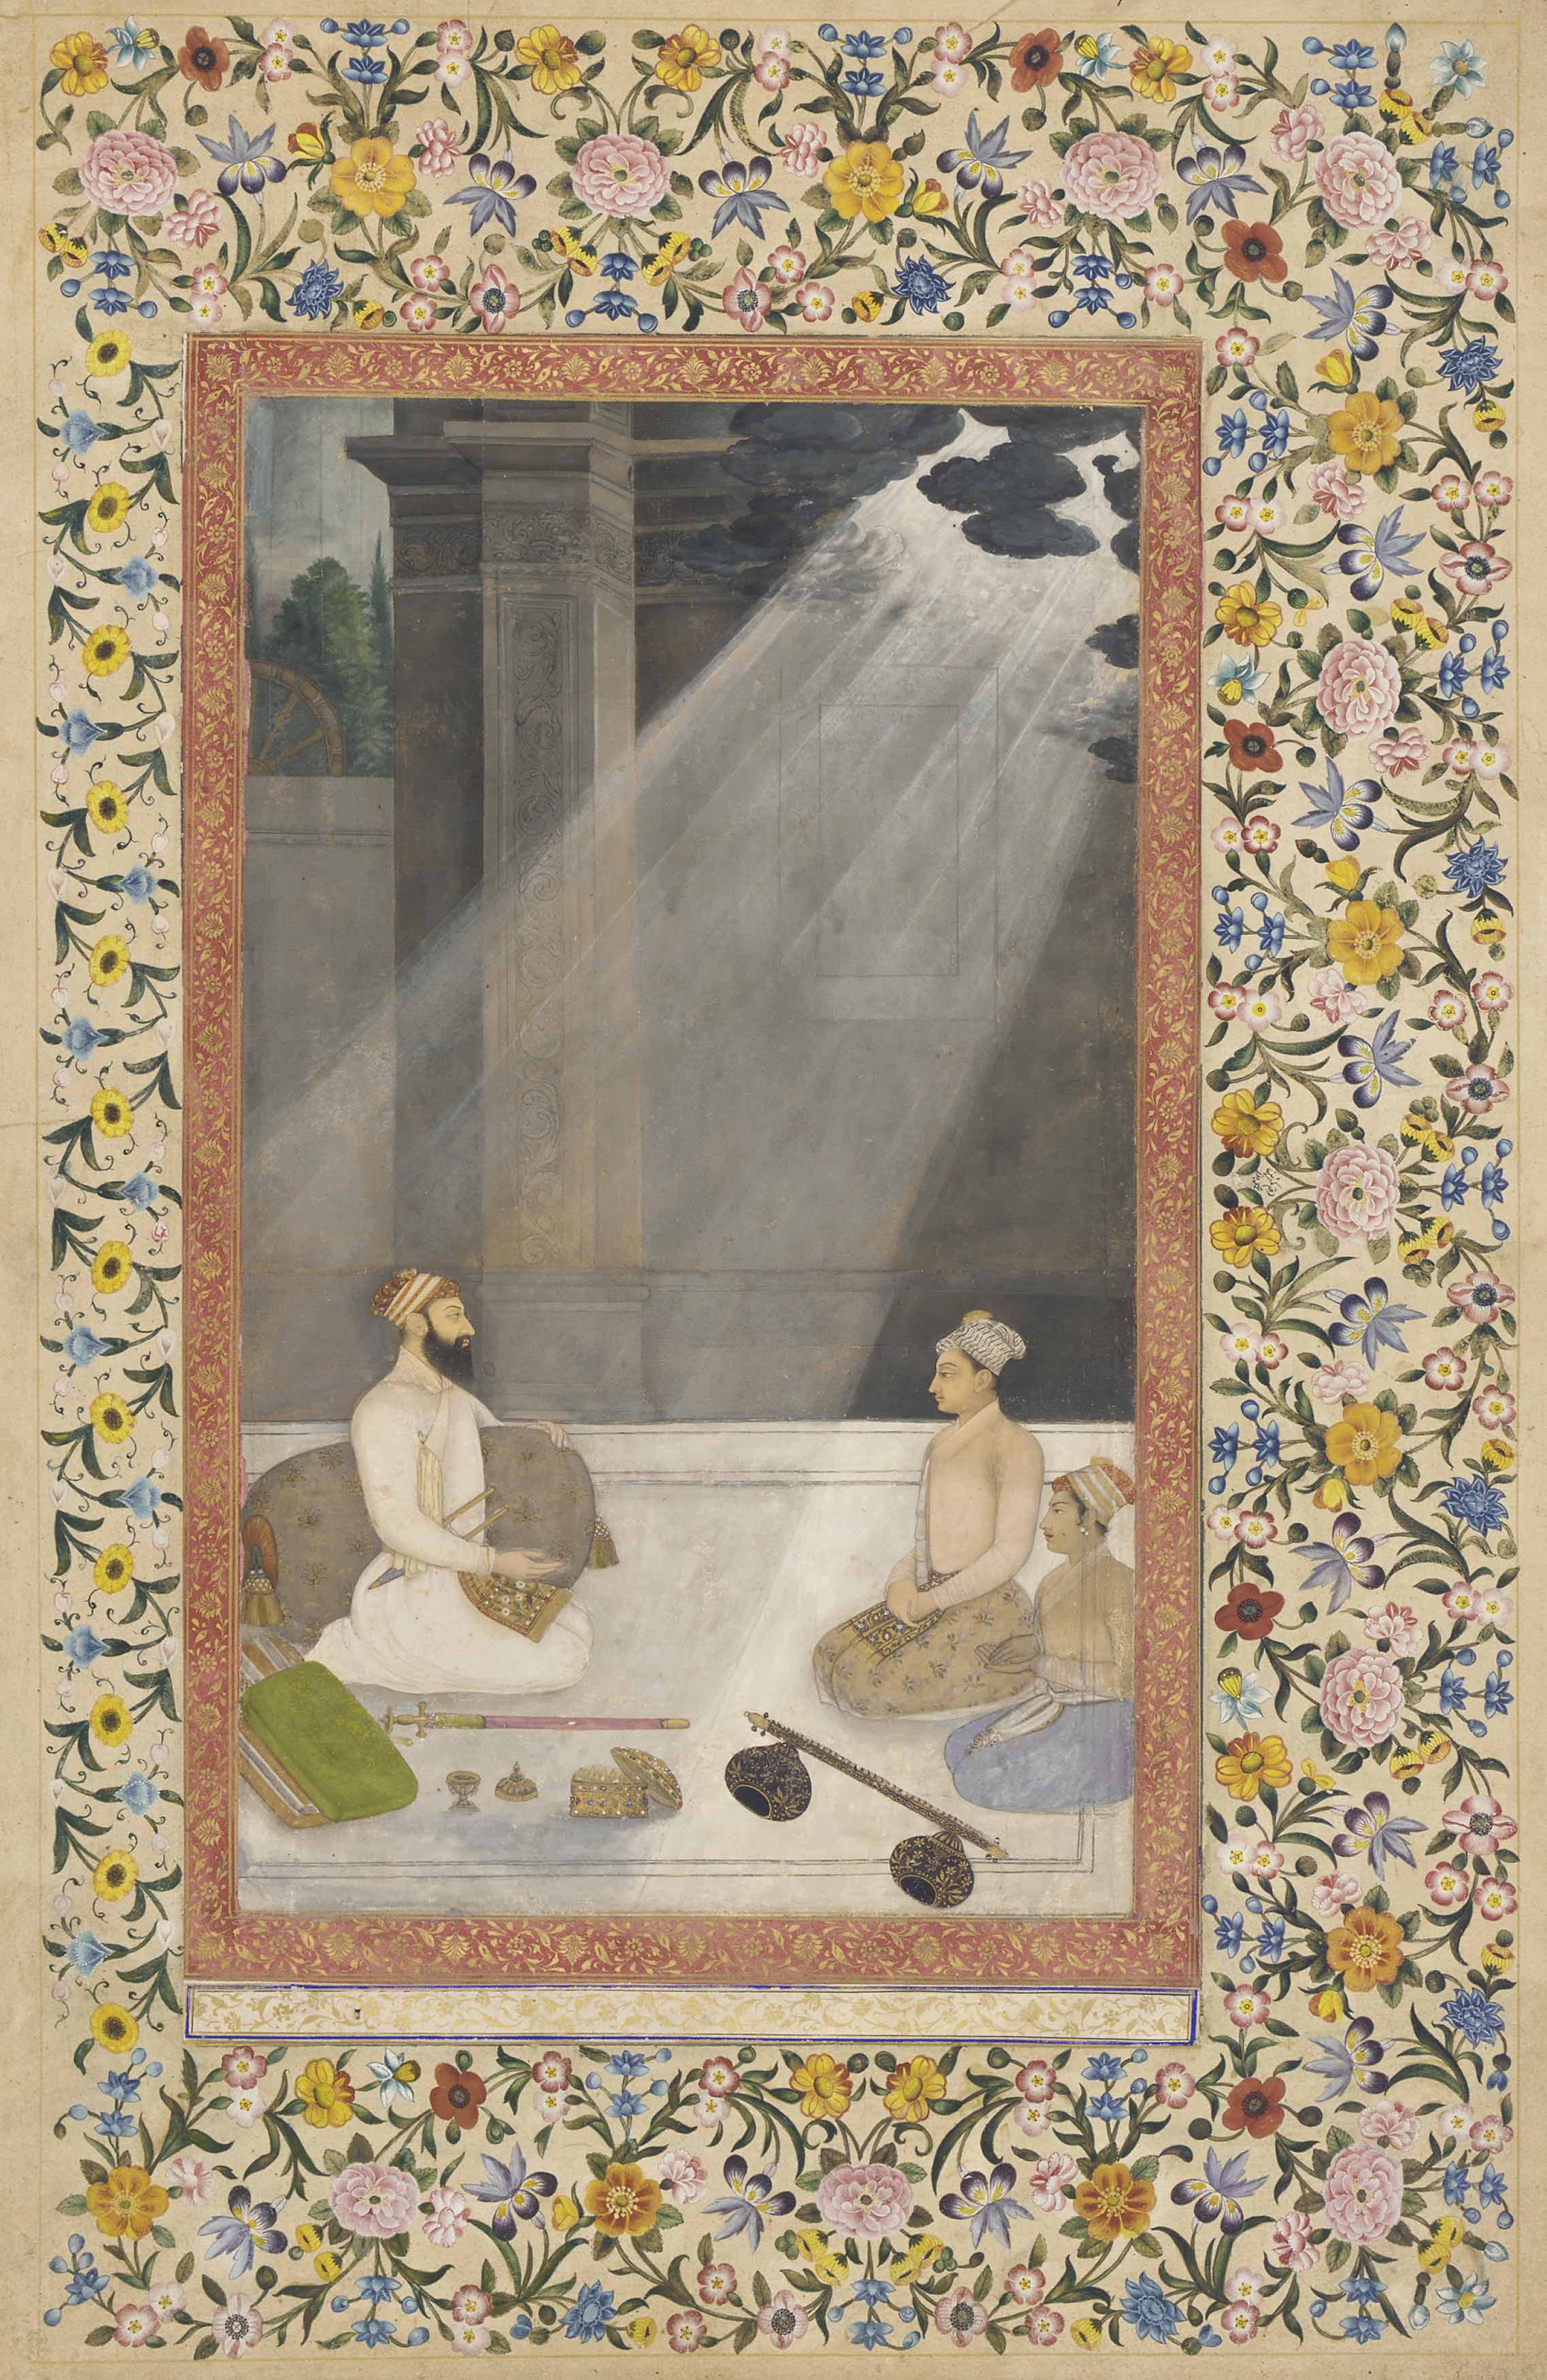 Aurangzeb in a Shaft of Light, from the St Petersburg Album, attributed to Hunhar, circa 1660. Courtesy: Stanford University Press